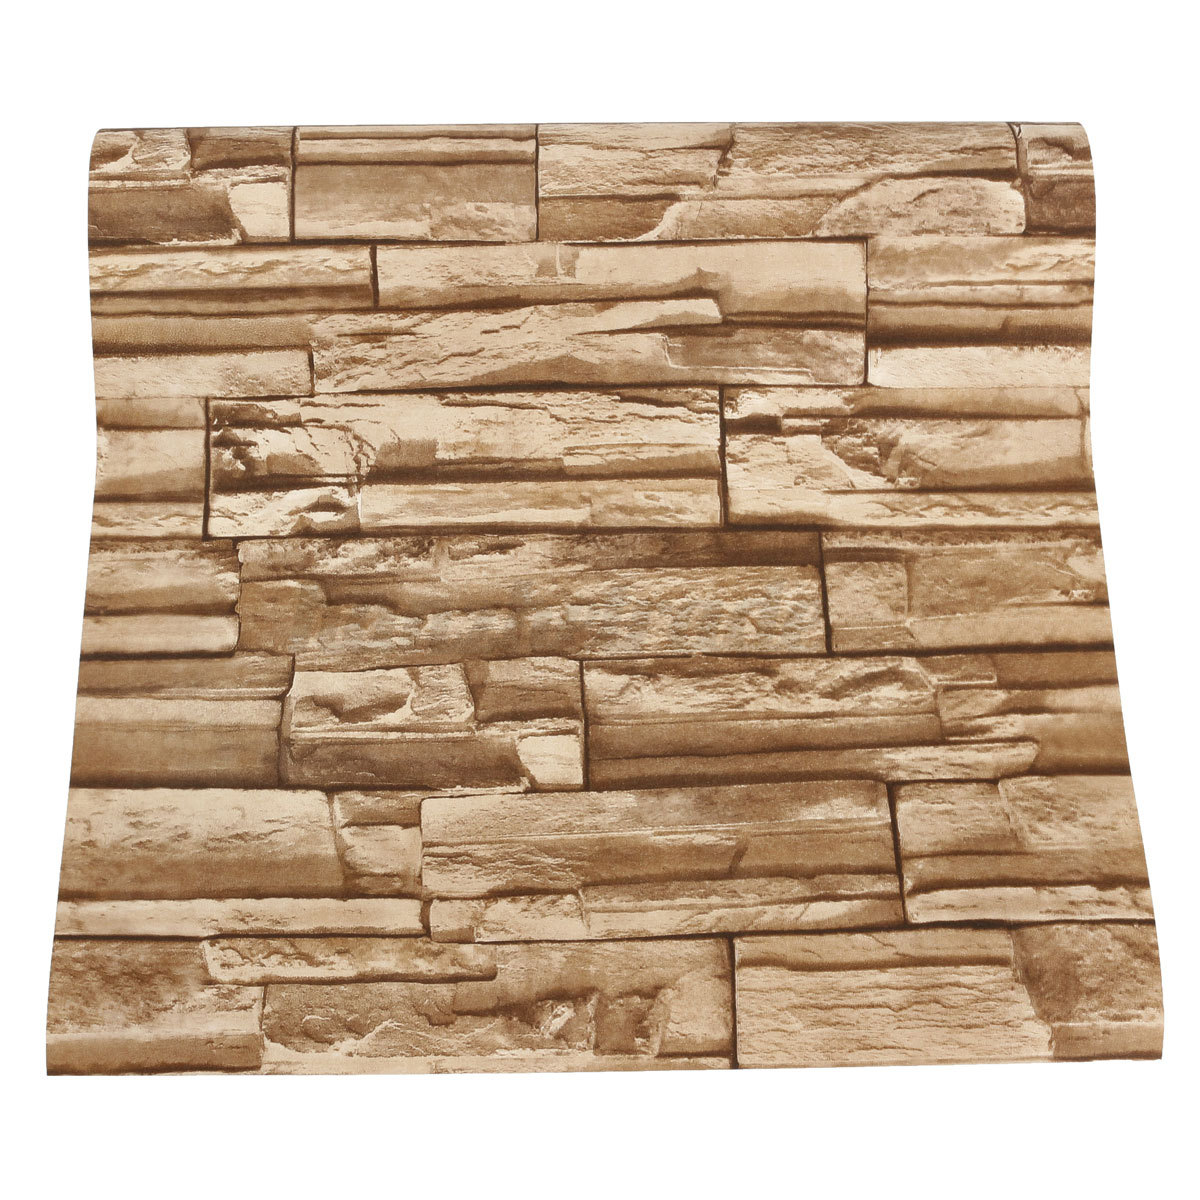 Textured Brick Wallpaper Uk Part - 48: Brick-Effect-Wallpaper-Vinyl-3D-Slate-Stone-Split-